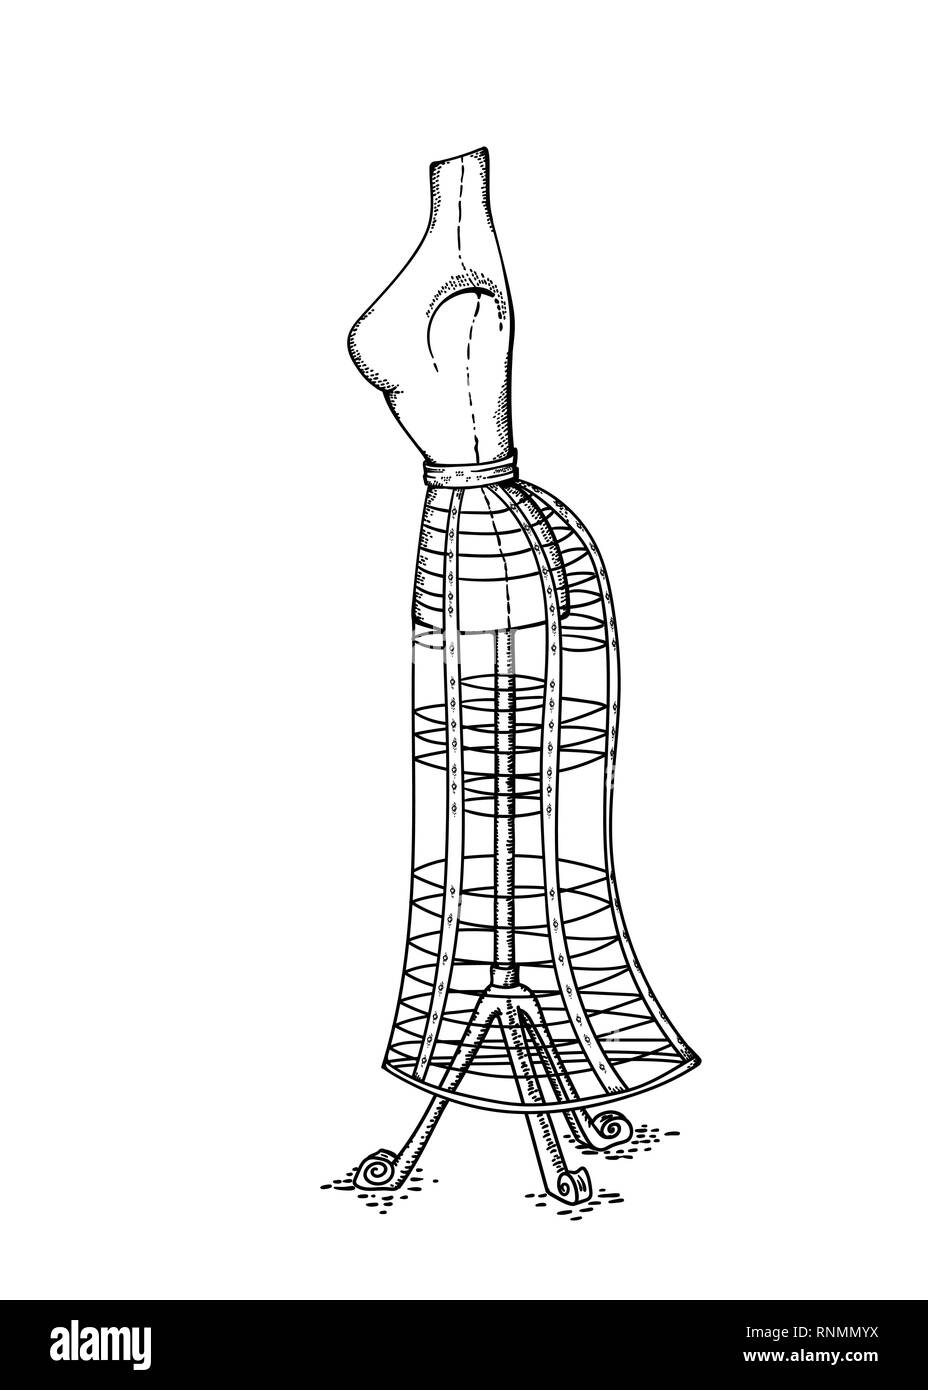 Vector hand drawn sketch of Victorian vintage mannequin for dressing studio, retro object for decoration and scrap booking - Stock Image